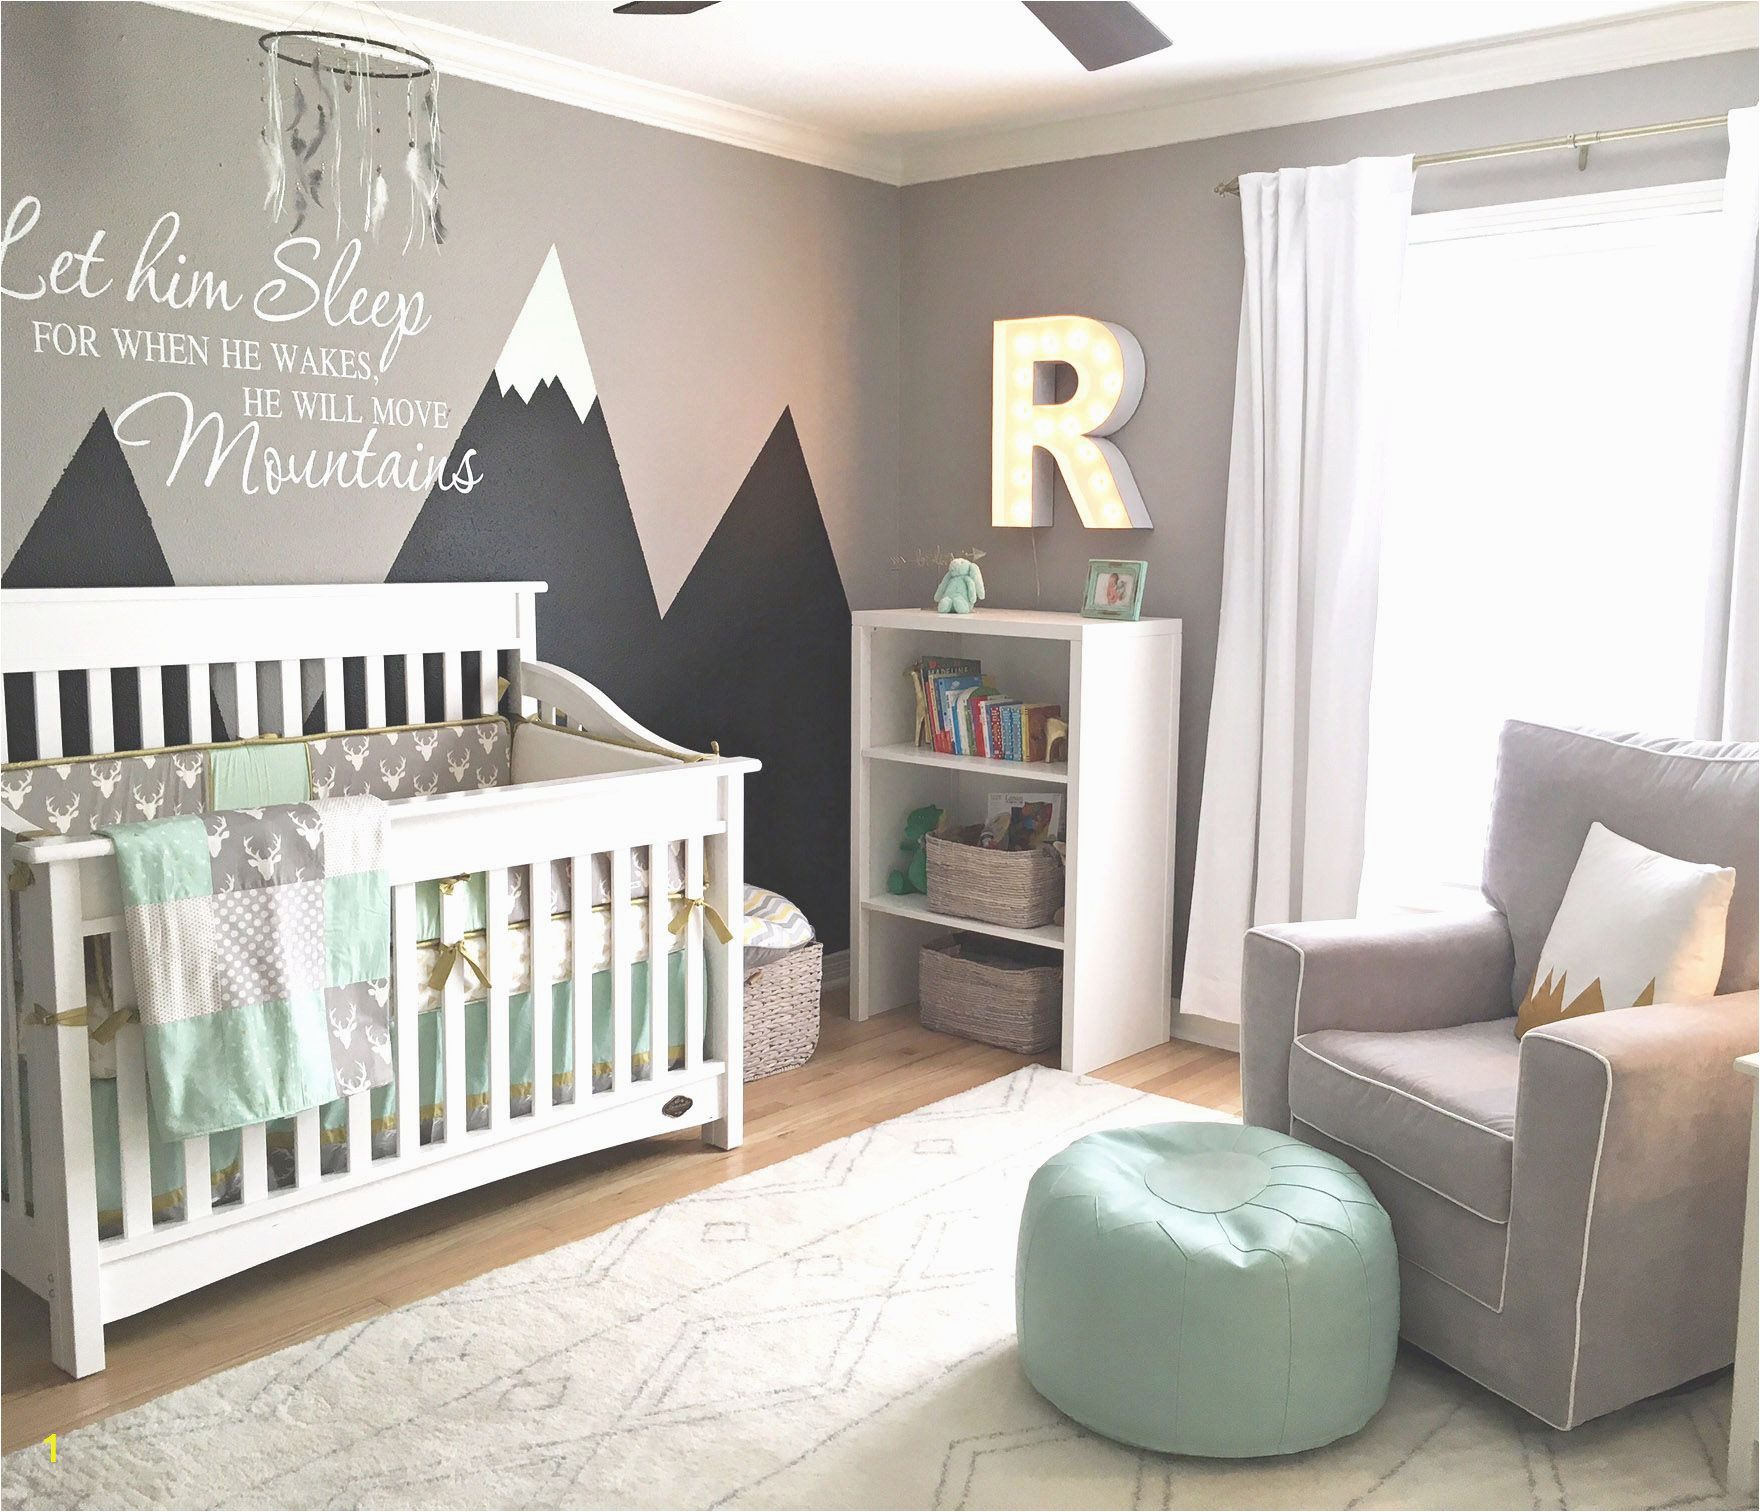 Baby Wall Mural Ideas 12 Nursery Trends for 2017